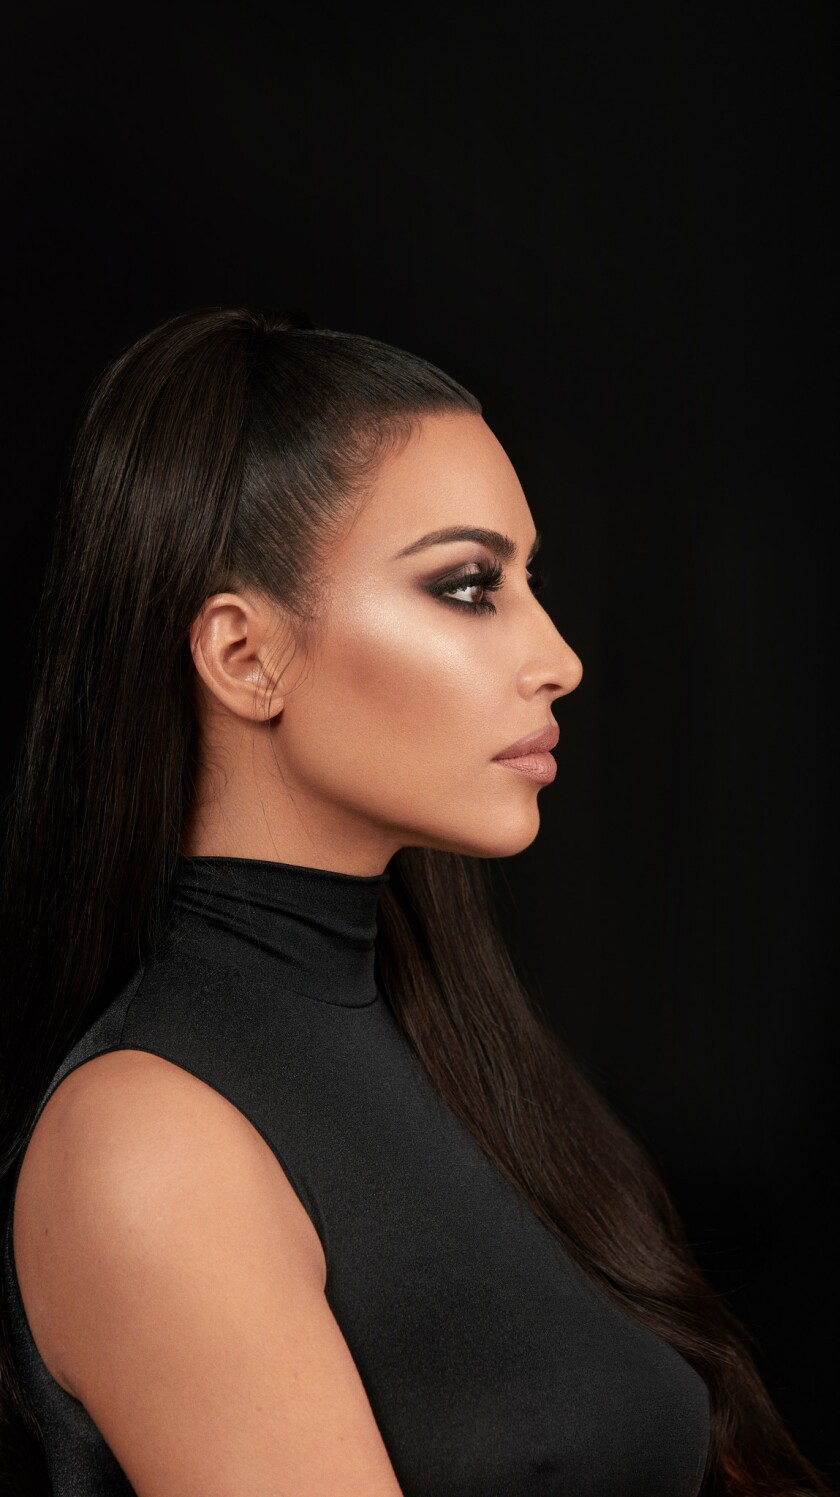 Kim Kardashian West for the Image section.